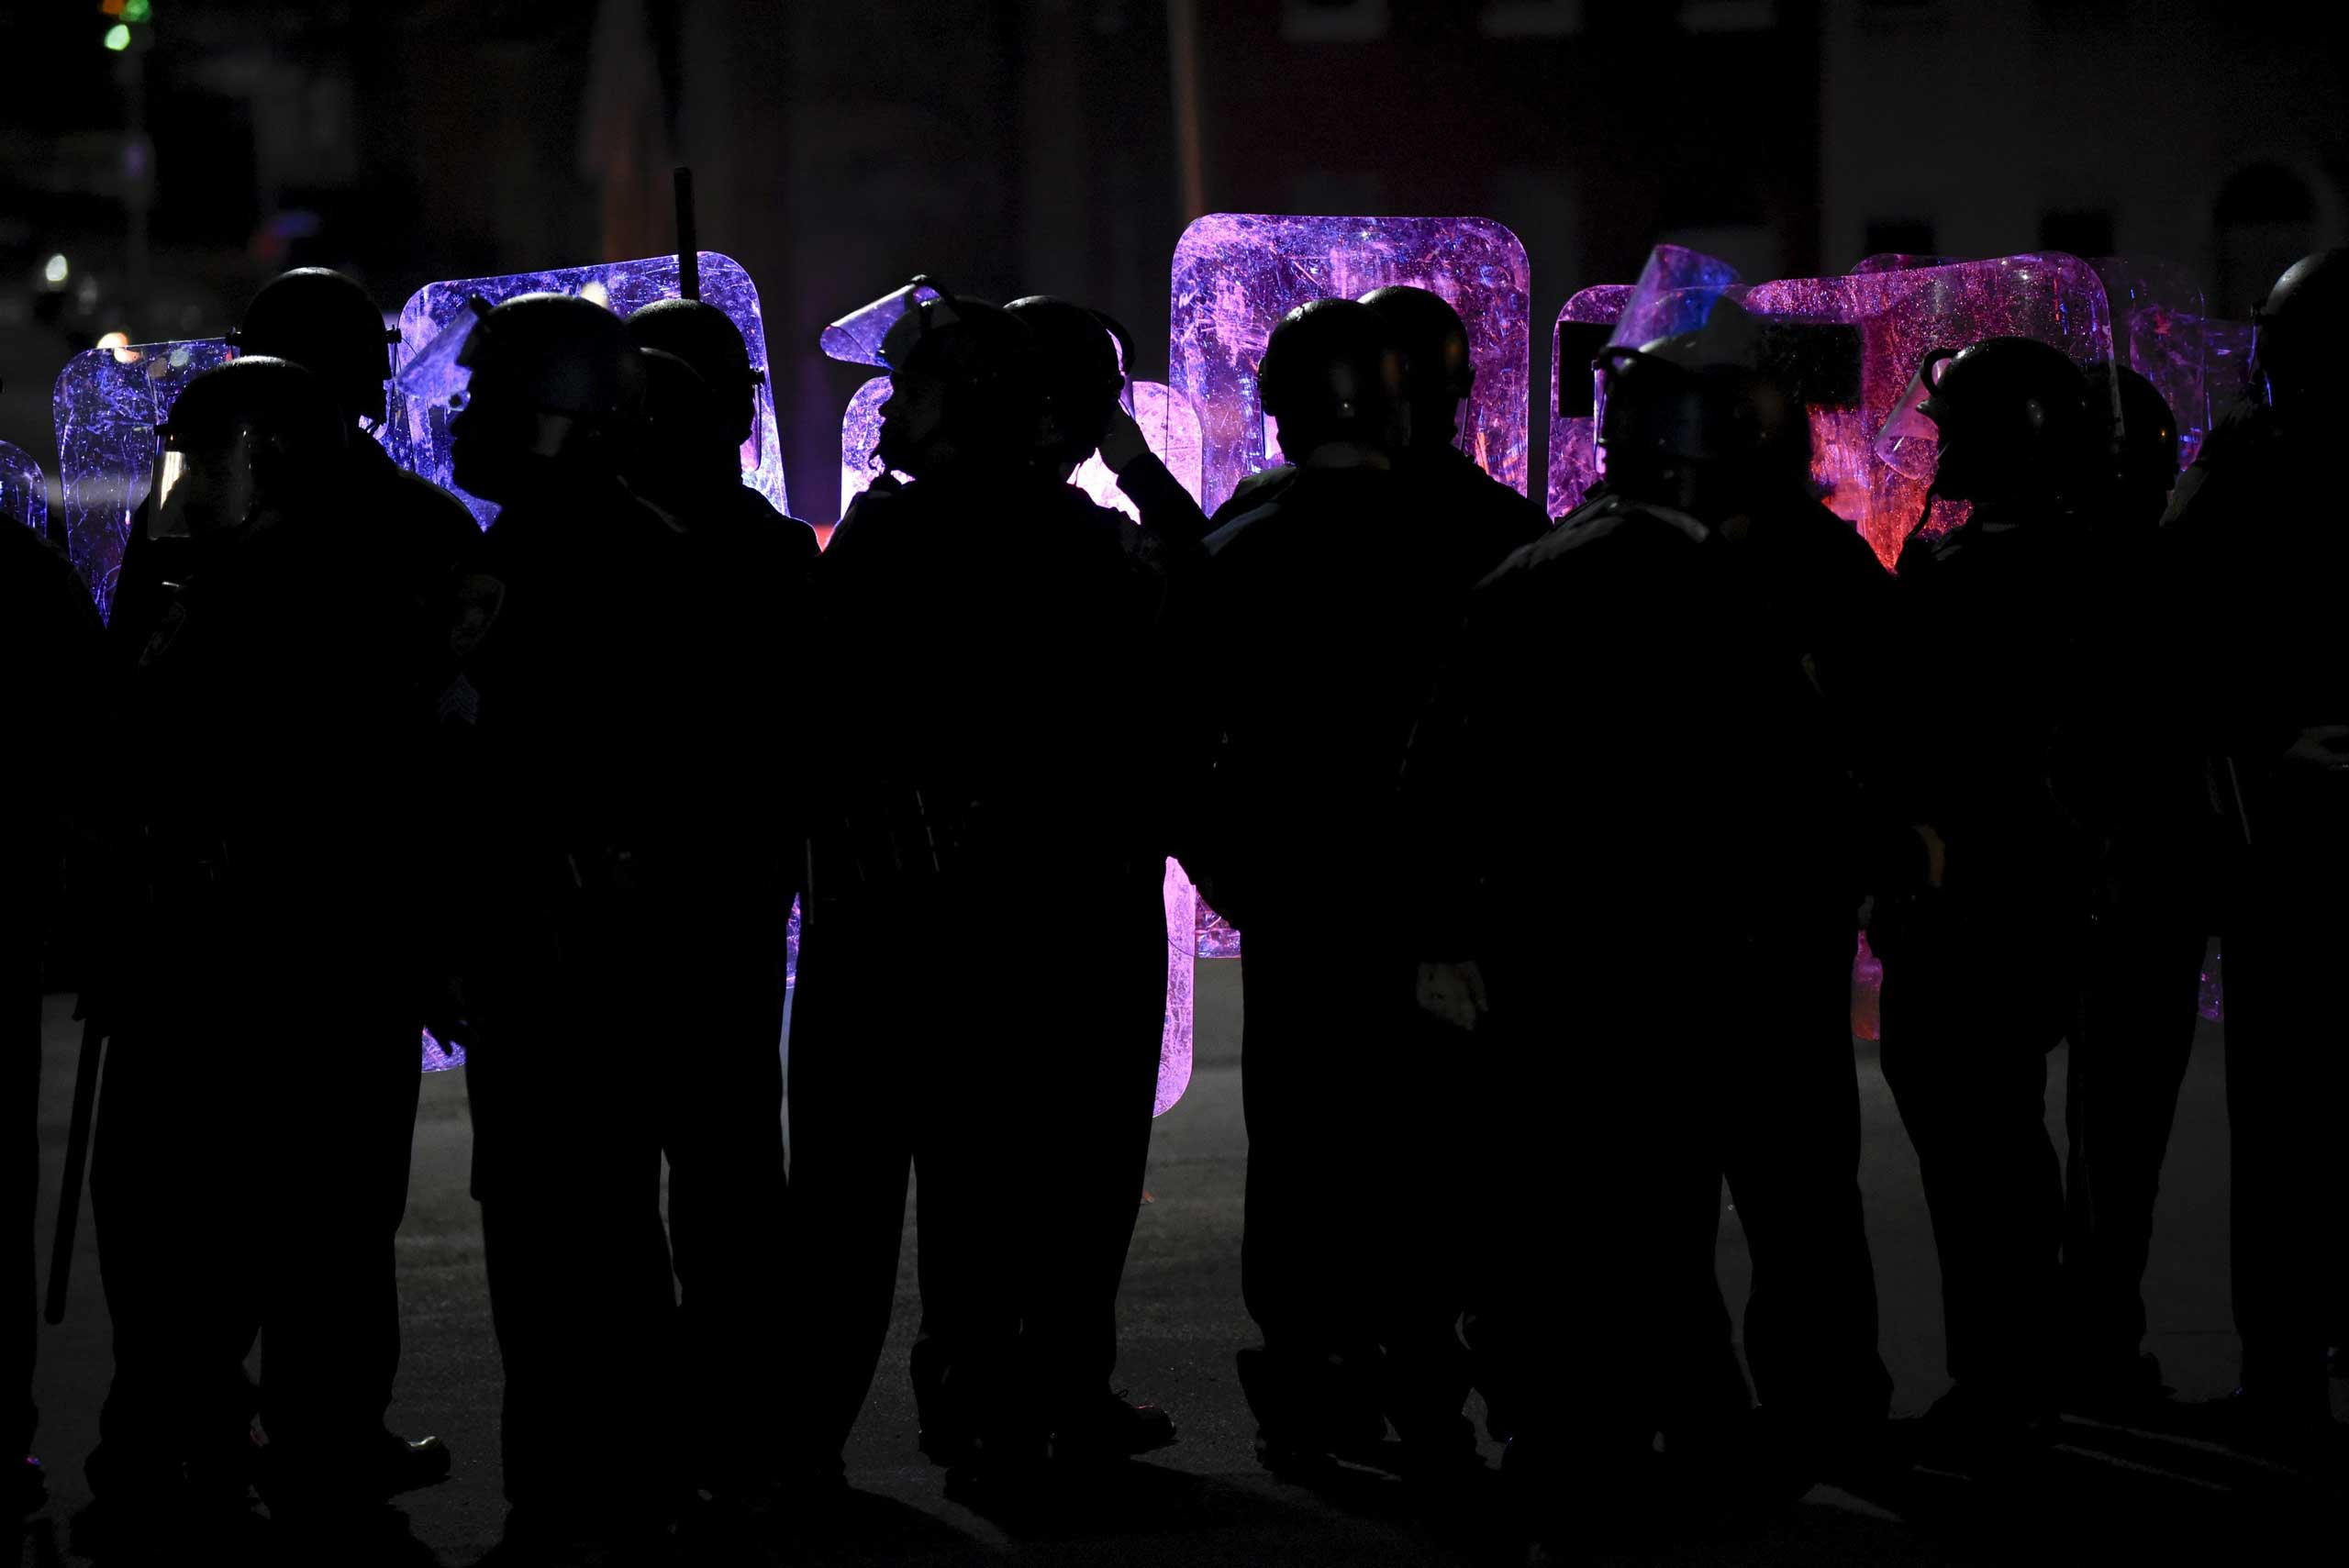 Law enforcement officers stand guard near Baltimore Police Department Western District in Baltimore on April 25, 2015.